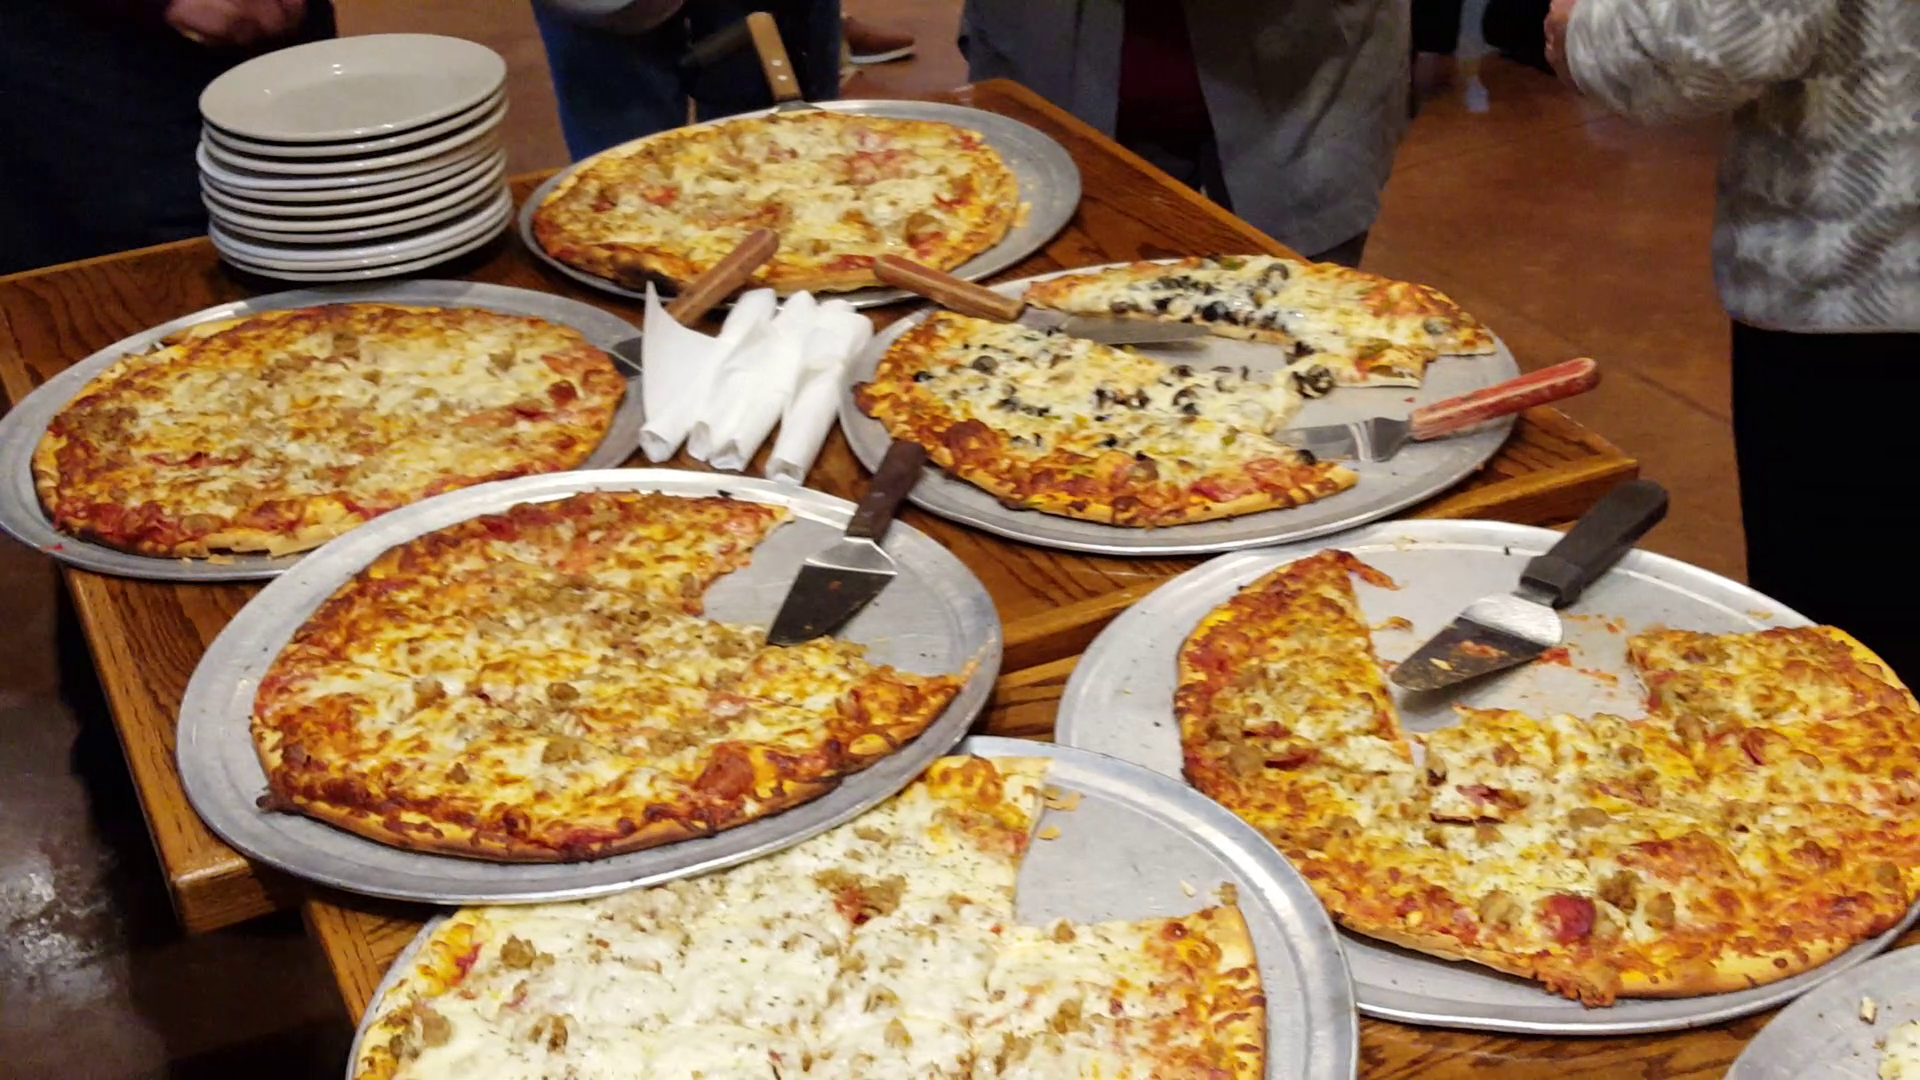 2 tables with 6 different pizzas, serving utensils, plates, and silverware.